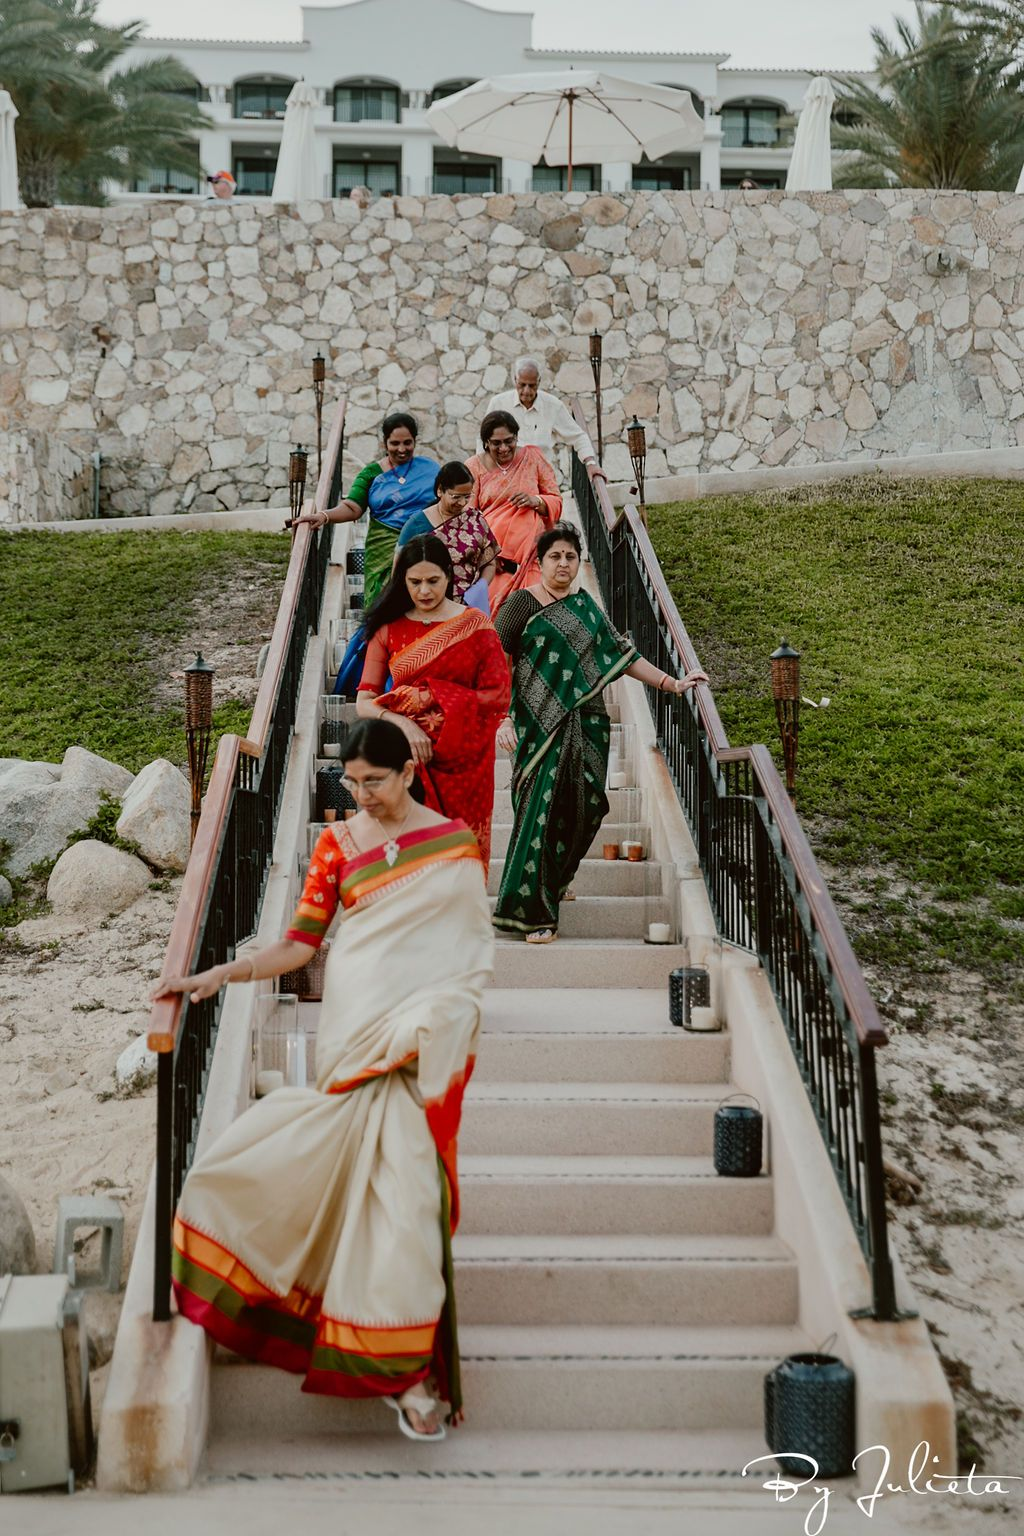 Guests arriving to the Sangeet. It took place on the beach at Hilton Los Cabos, in Cabo San Lucas, Mexico. The Photography was done by Julieta Amezcua and the Wedding Planning was done by Cabo Wedding Services. The best Wedding Planners in Cabo.